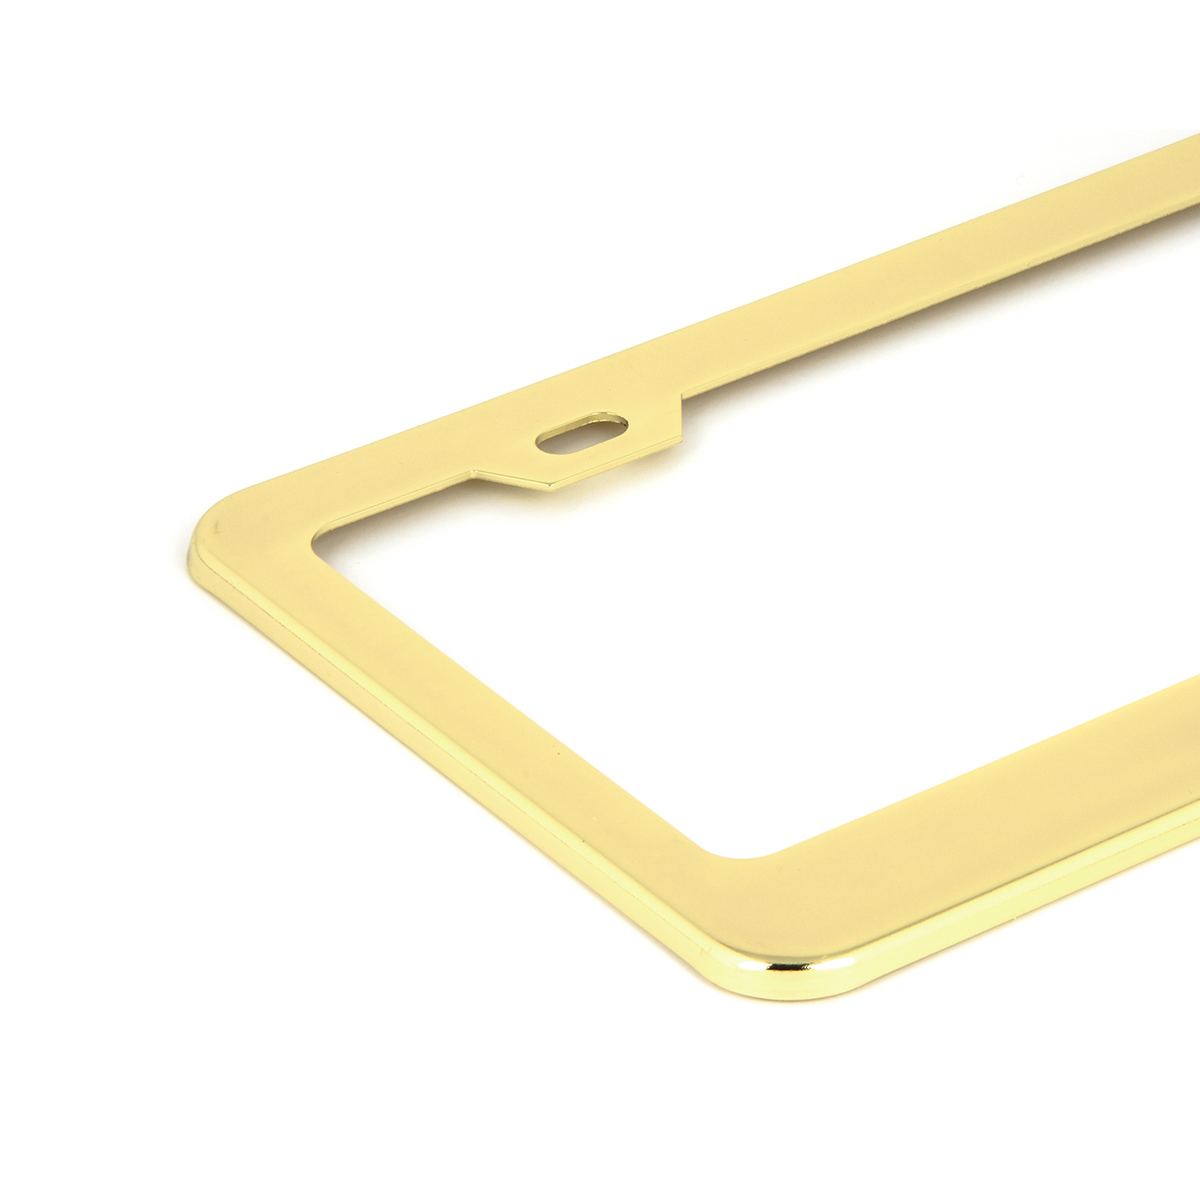 Brass-Plated (Gold Color) USA License Plate Frame - Close Up View